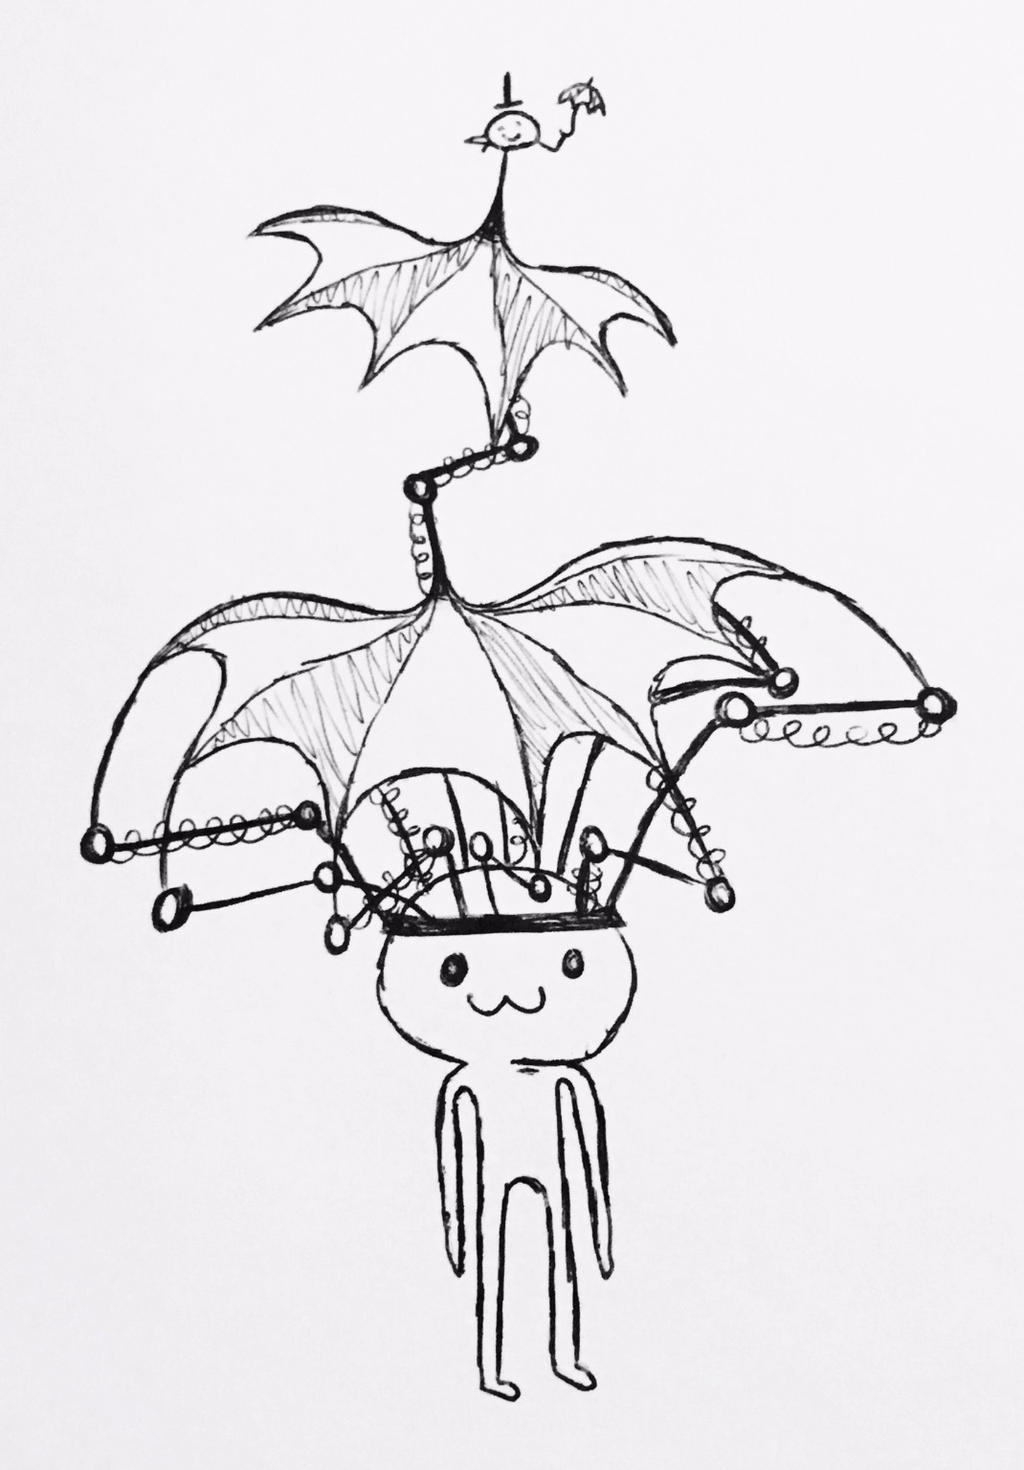 Umbrella Hat 2.0 - September of Draws Day 26 by ThermalTheorist